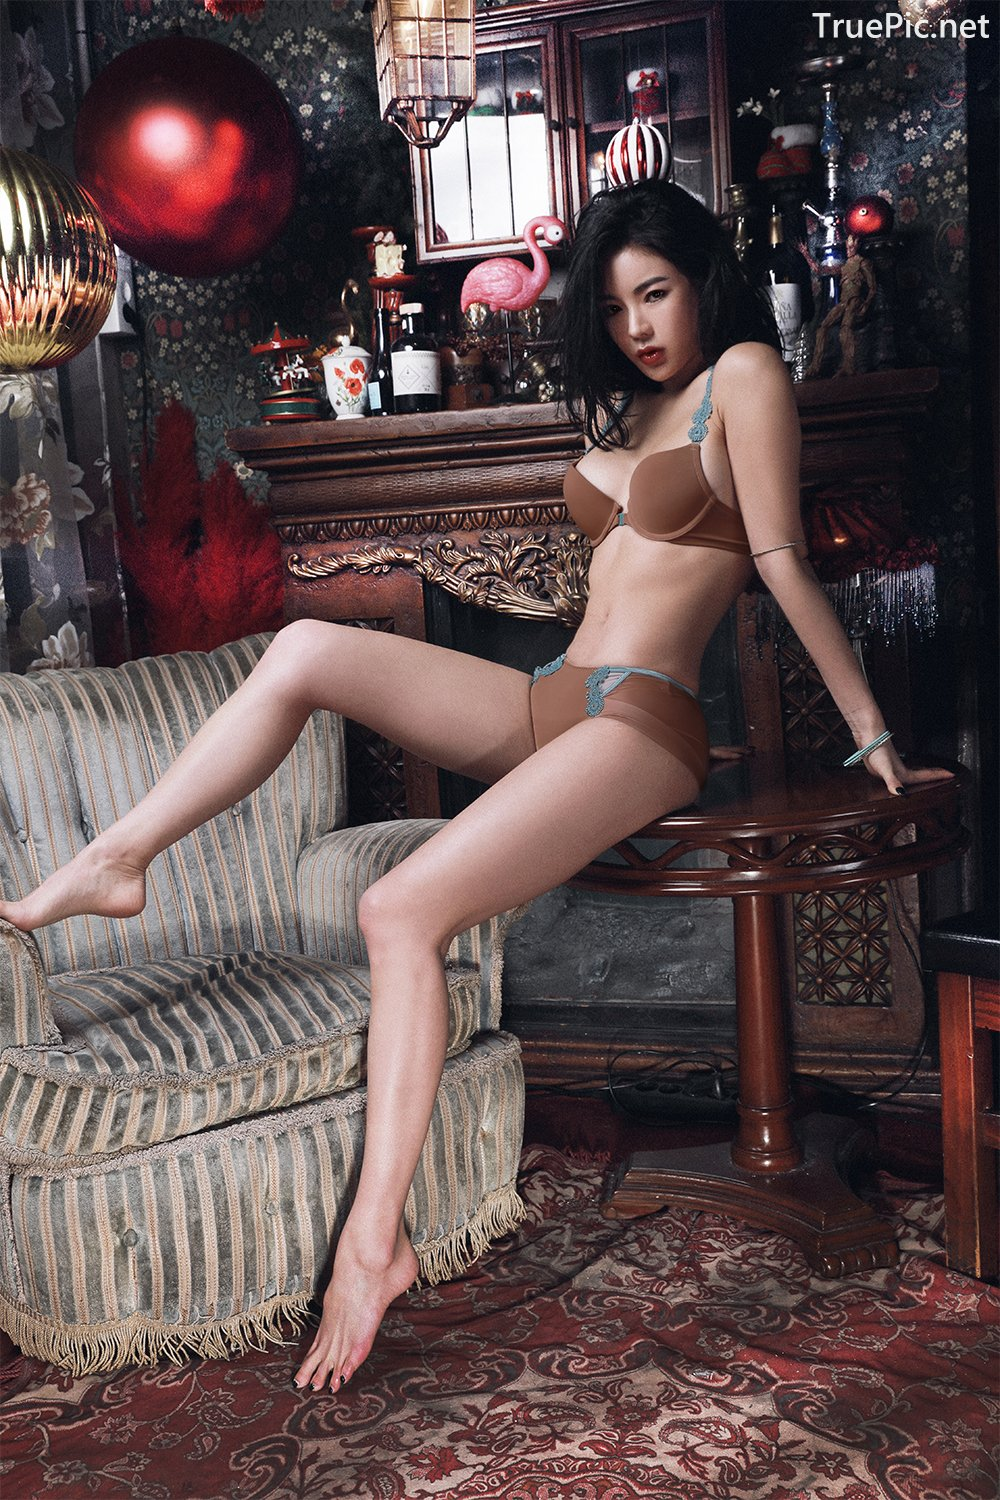 Image-An-Seo-Rin-Brown-and-Red-Lingerie-Korean-Model-Fashion-TruePic.net- Picture-9